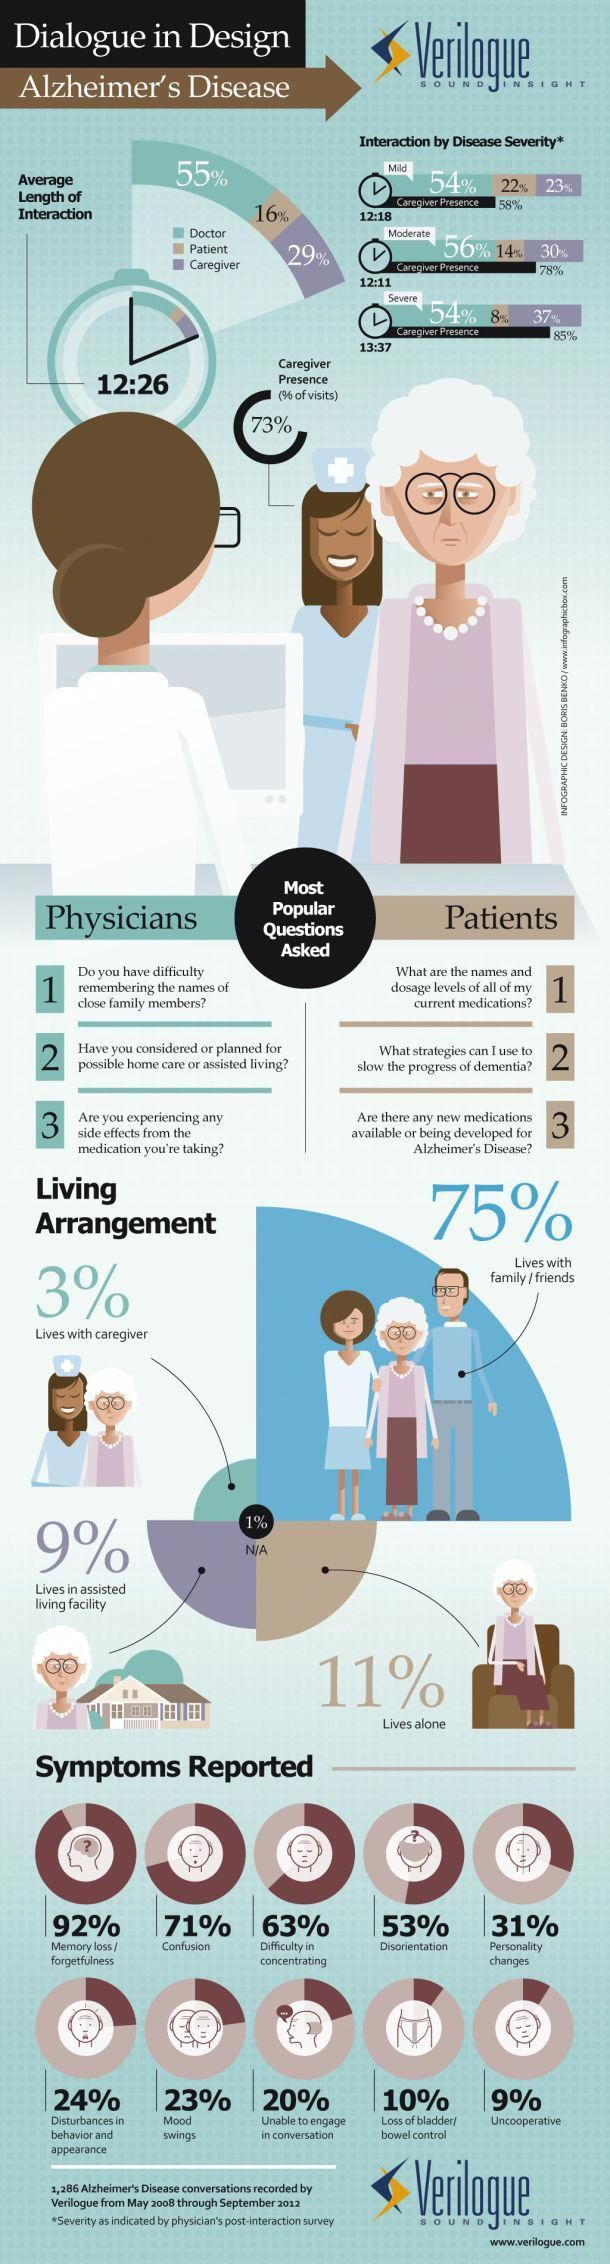 Healthcare infographic Dialogue in Design Alzheimer's